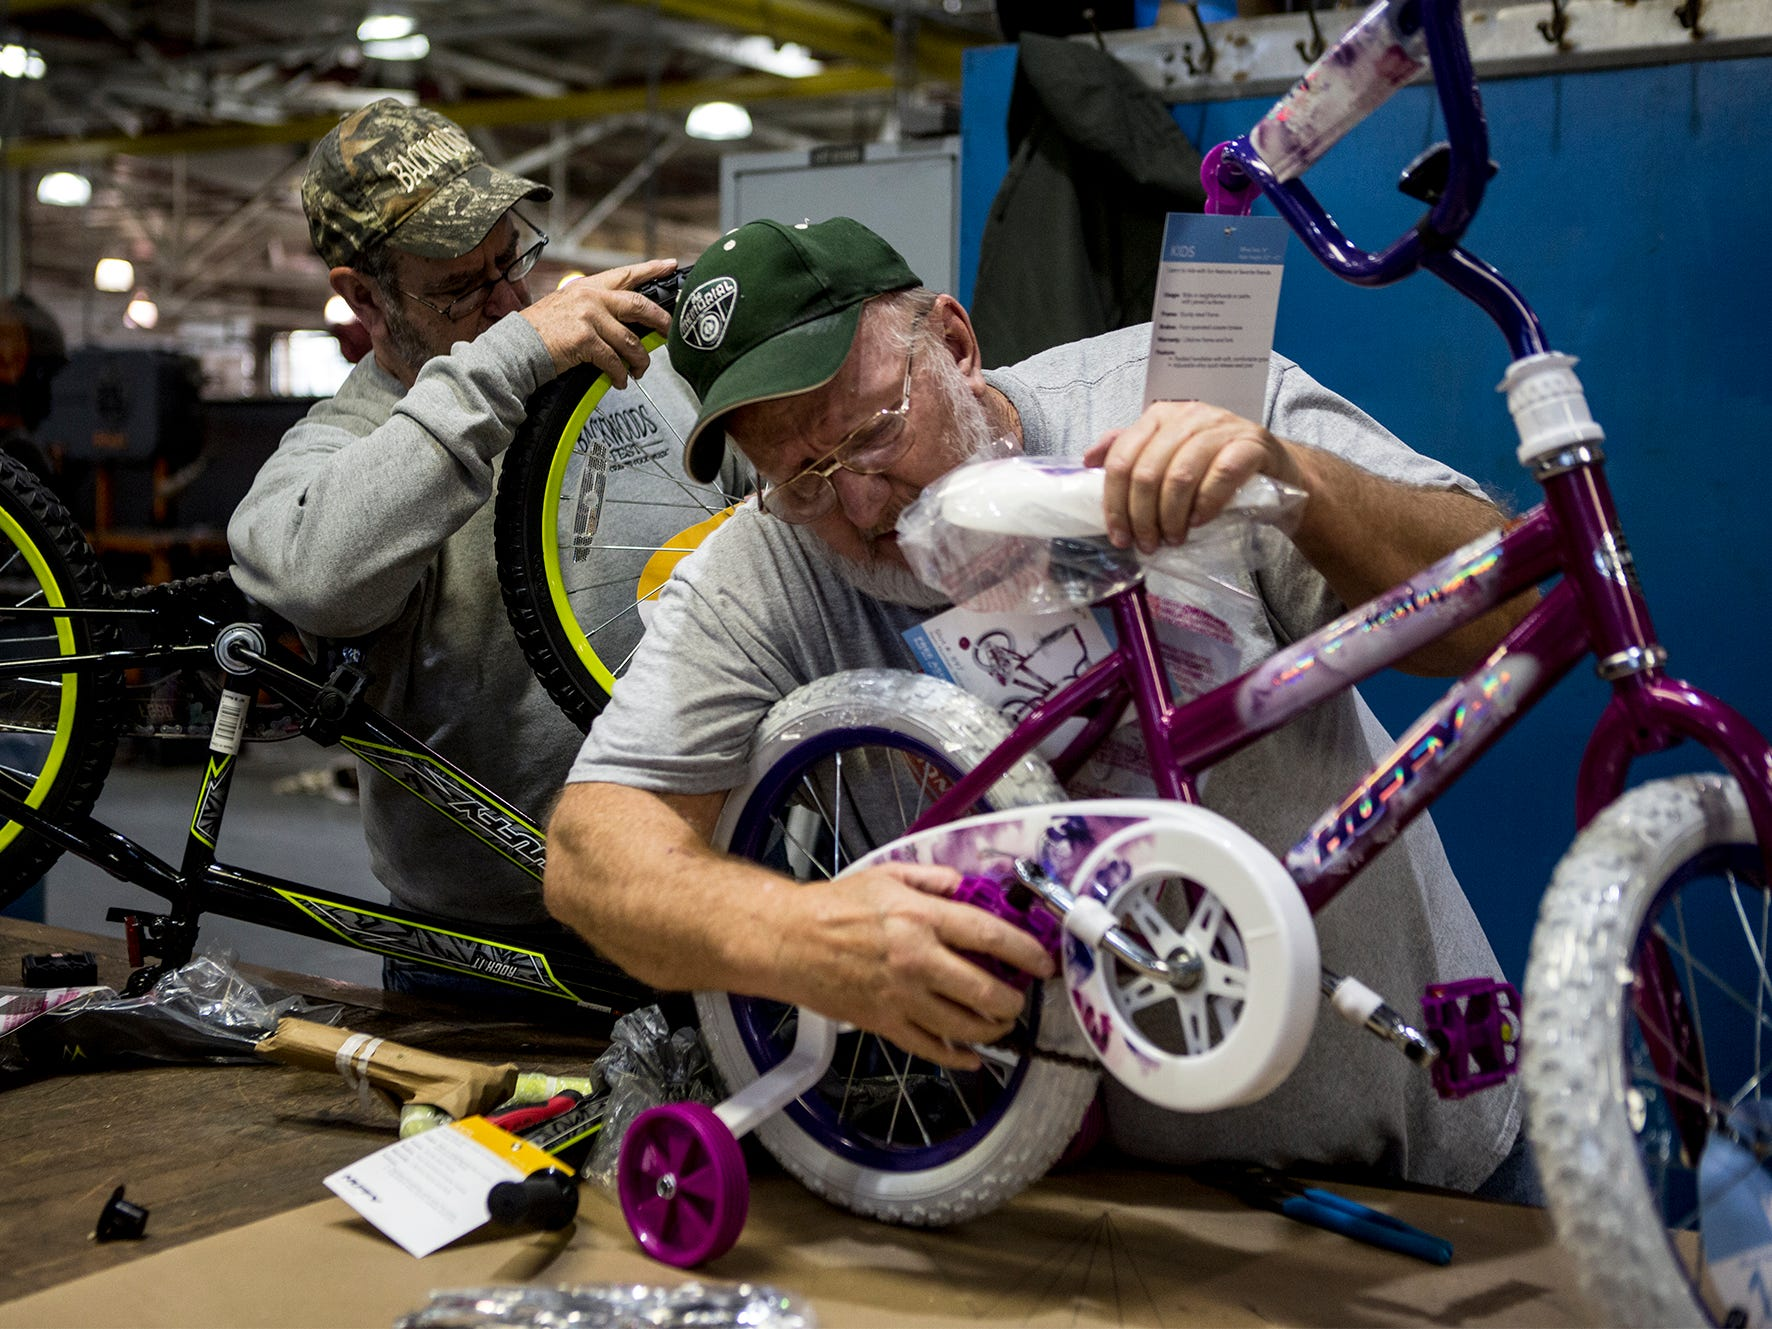 Ronnie Combs and Pete Becker work on assembling bikes Friday at Owens Corning. For the fourteenth year workers at Owens Corning put together bikes for kids in need to be given out at the Salvation Army's toy drive later this month. This year 138 bikes were assembled by Owens Corning and Aboris.